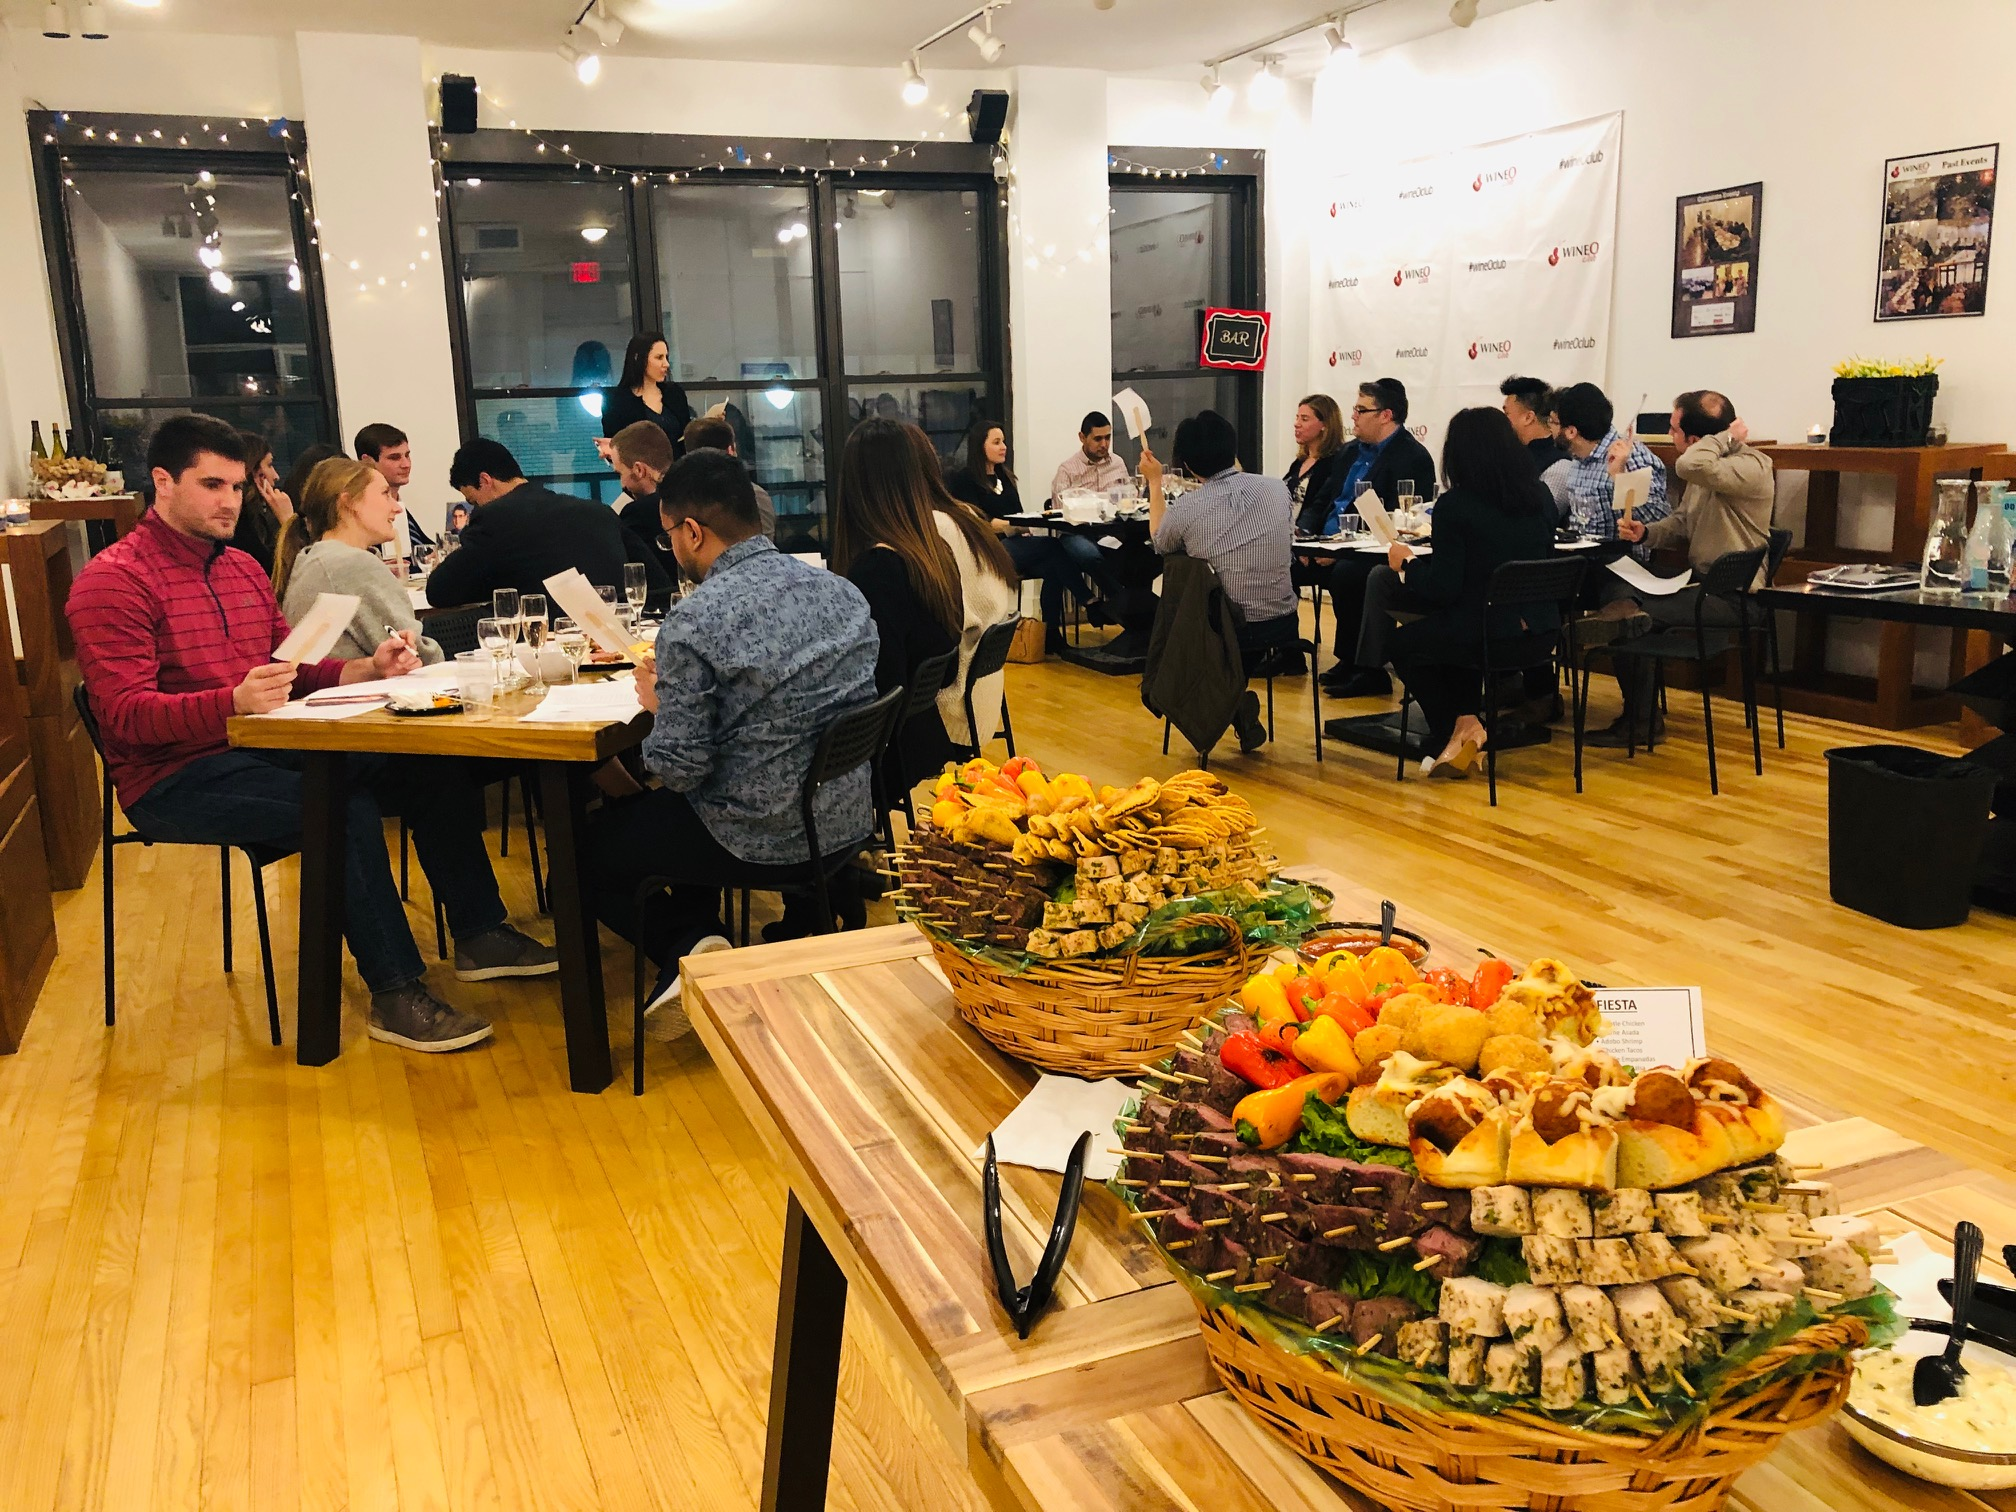 Sit Down Events - Ideal for learning in an informative setting (seated event)Cheese pairings with each winePlay interactive, educational, and fungamesLearn how to look, smell, and taste like asommelierGreat activity for team building!